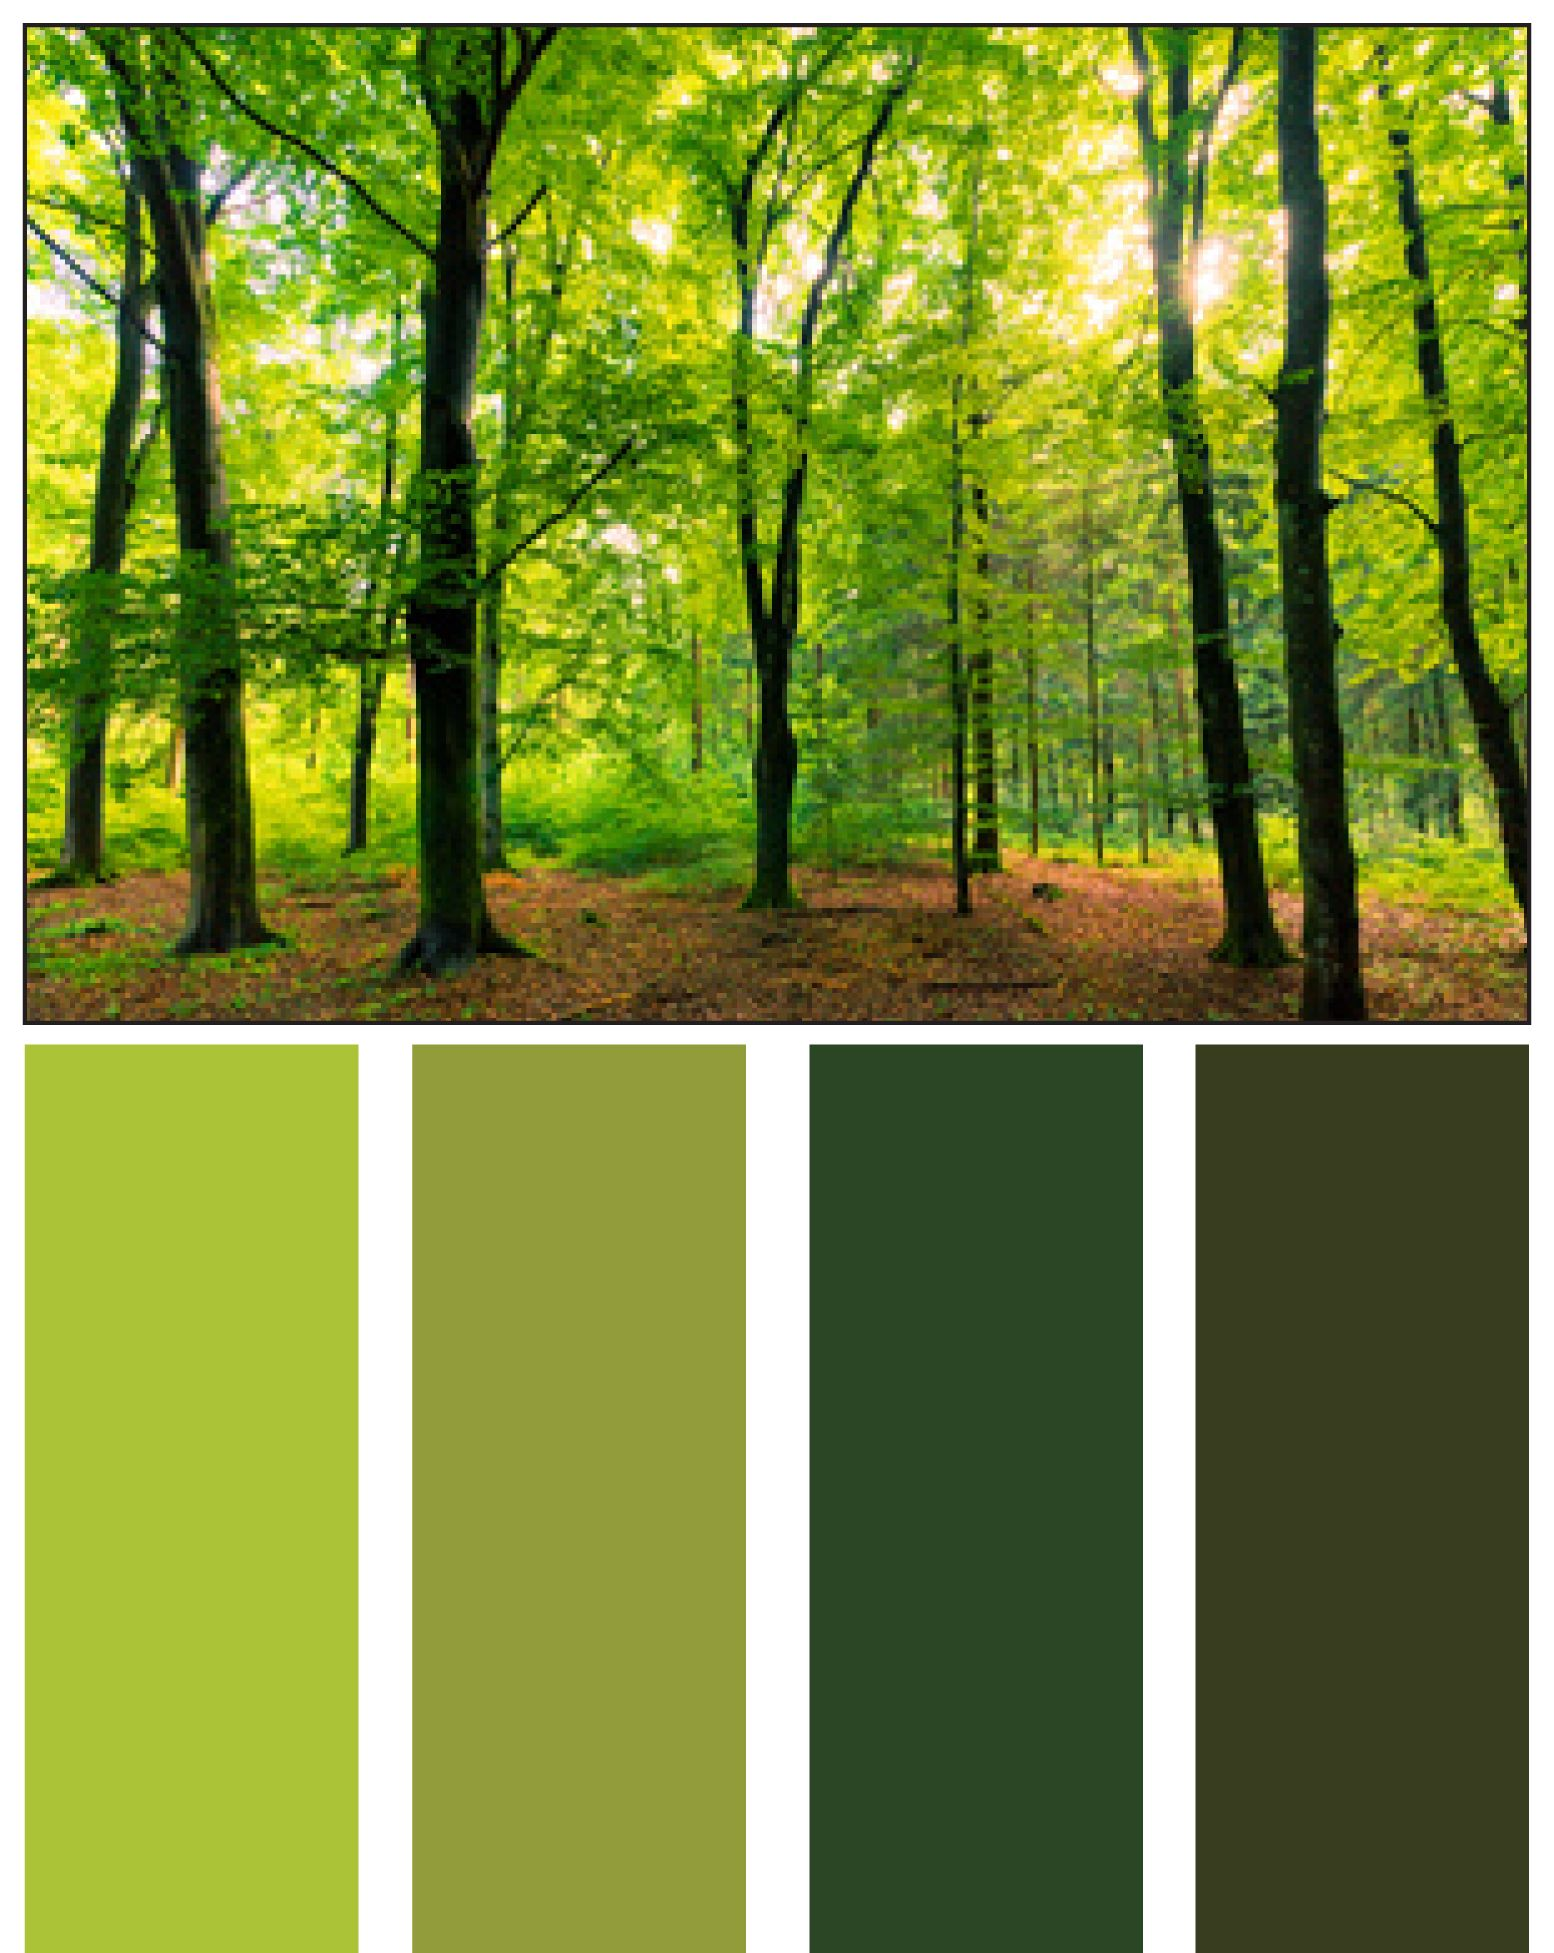 emerald green - Szukaj w Google | Green | Pinterest | Green palette ...